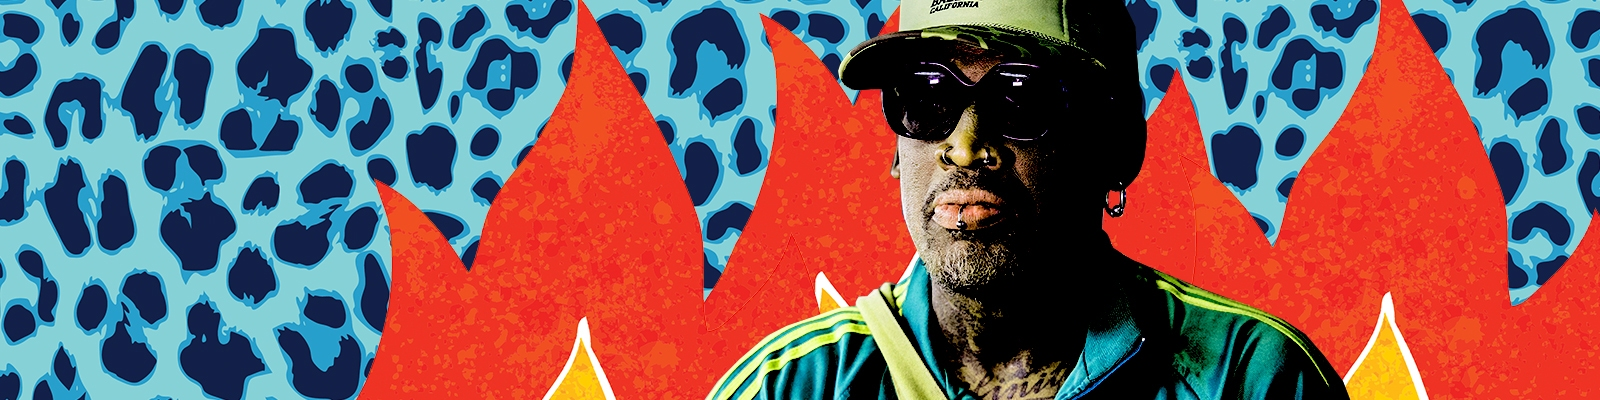 Dennis Rodman Wants You To See 'The Real Me'